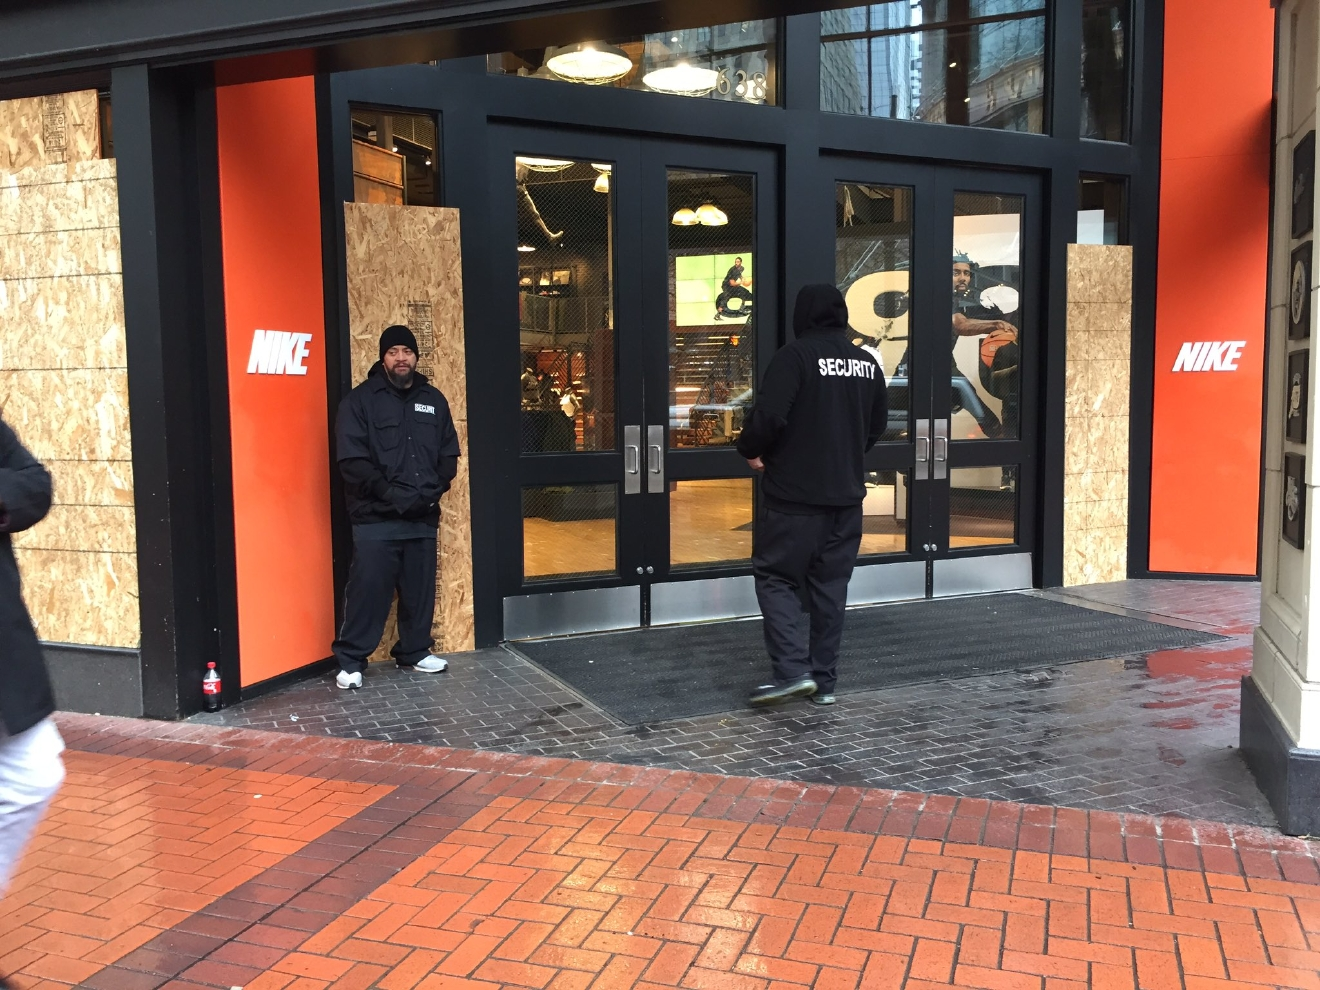 Dec 09,  · Police are looking for a person who fired a gun into the air from a car Saturday morning as a crowd waited outside the Nike store in downtown Portland.